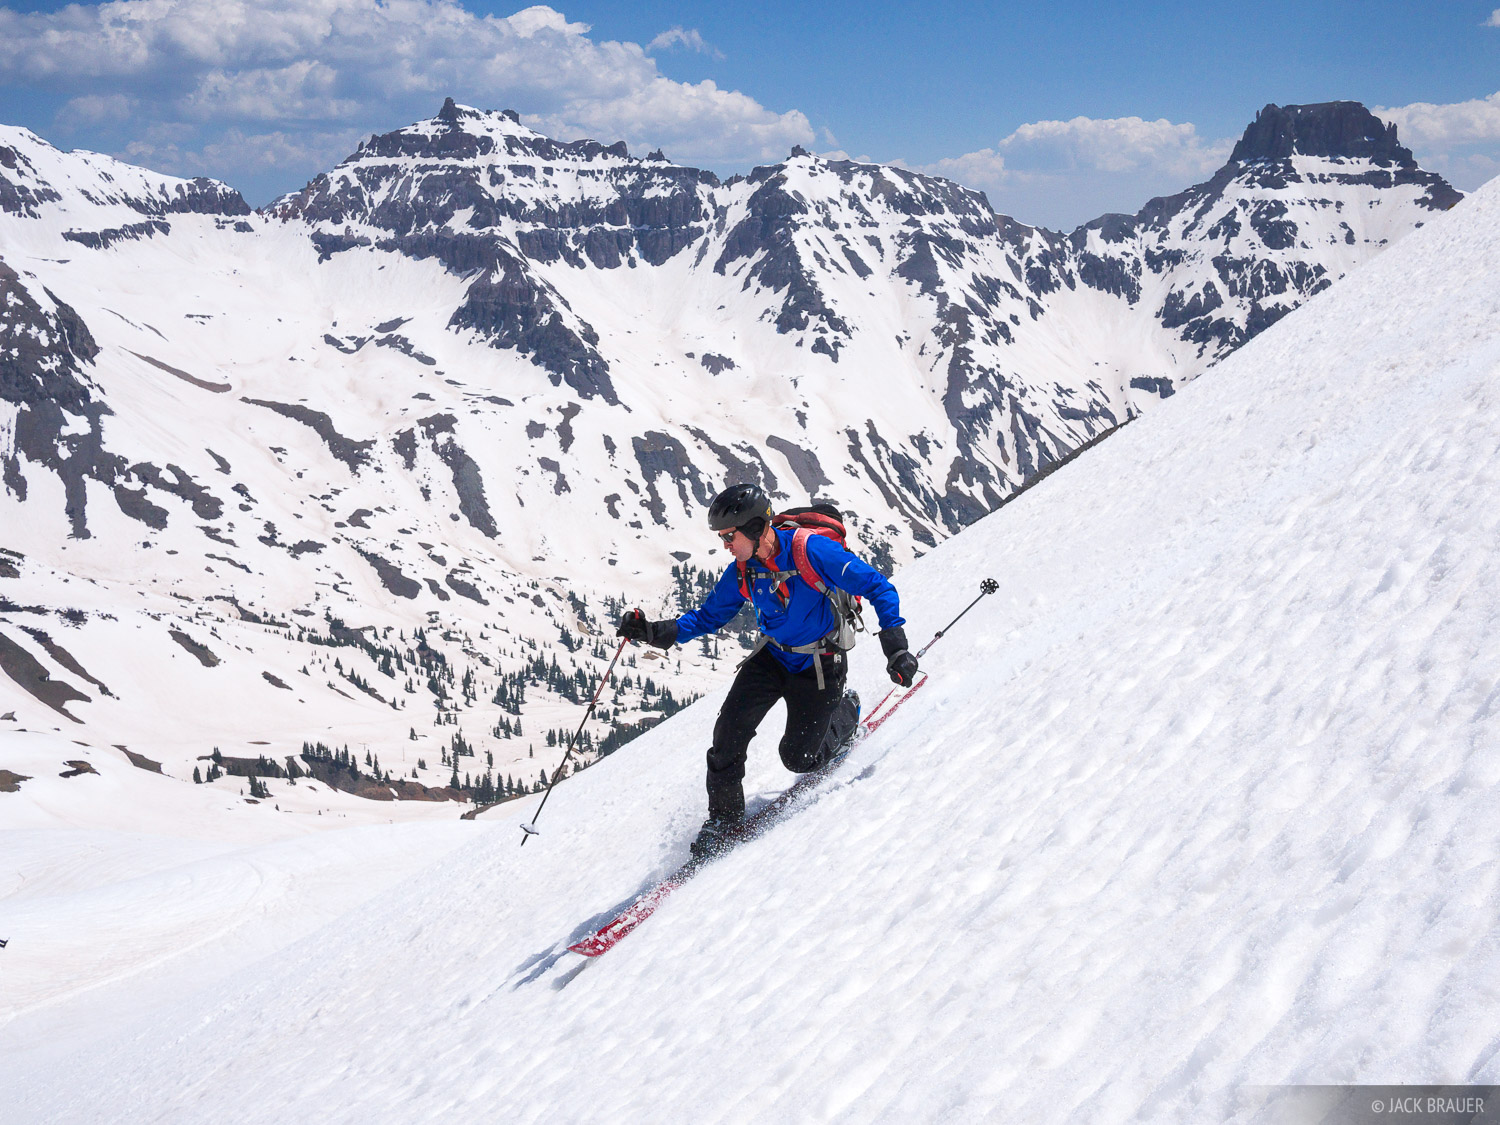 tele, skier, San Juan Mountains, Colorado, skiing, June, photo